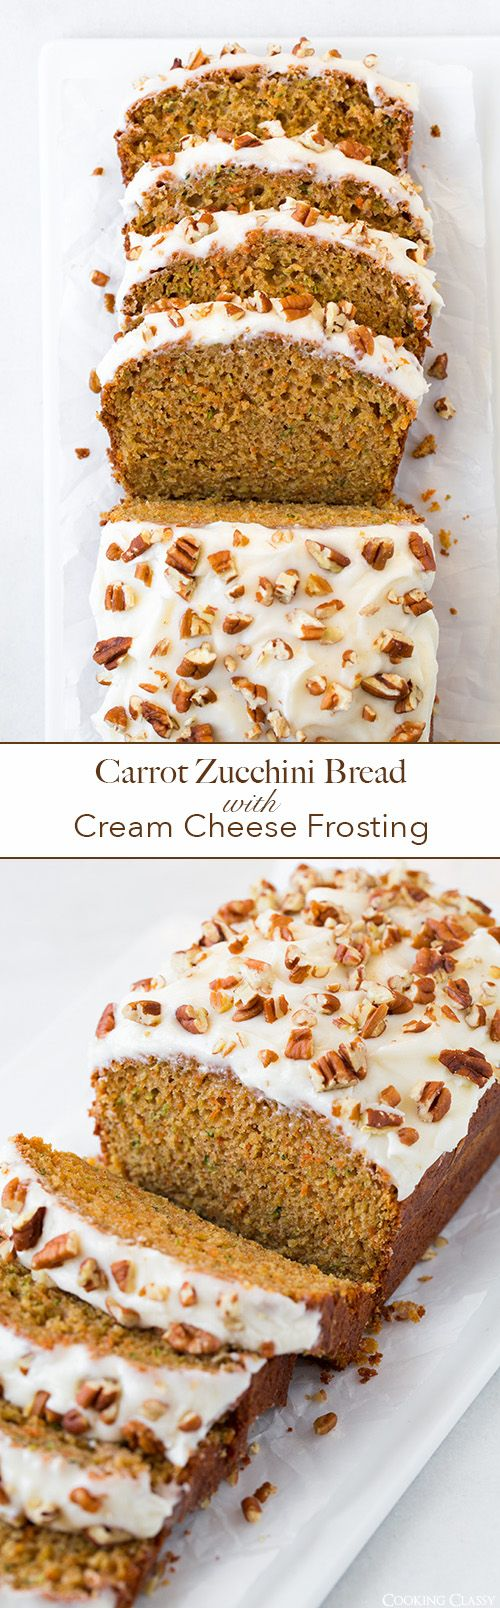 Carrot Zucchini Bread with Cream Cheese Frosting #Easter